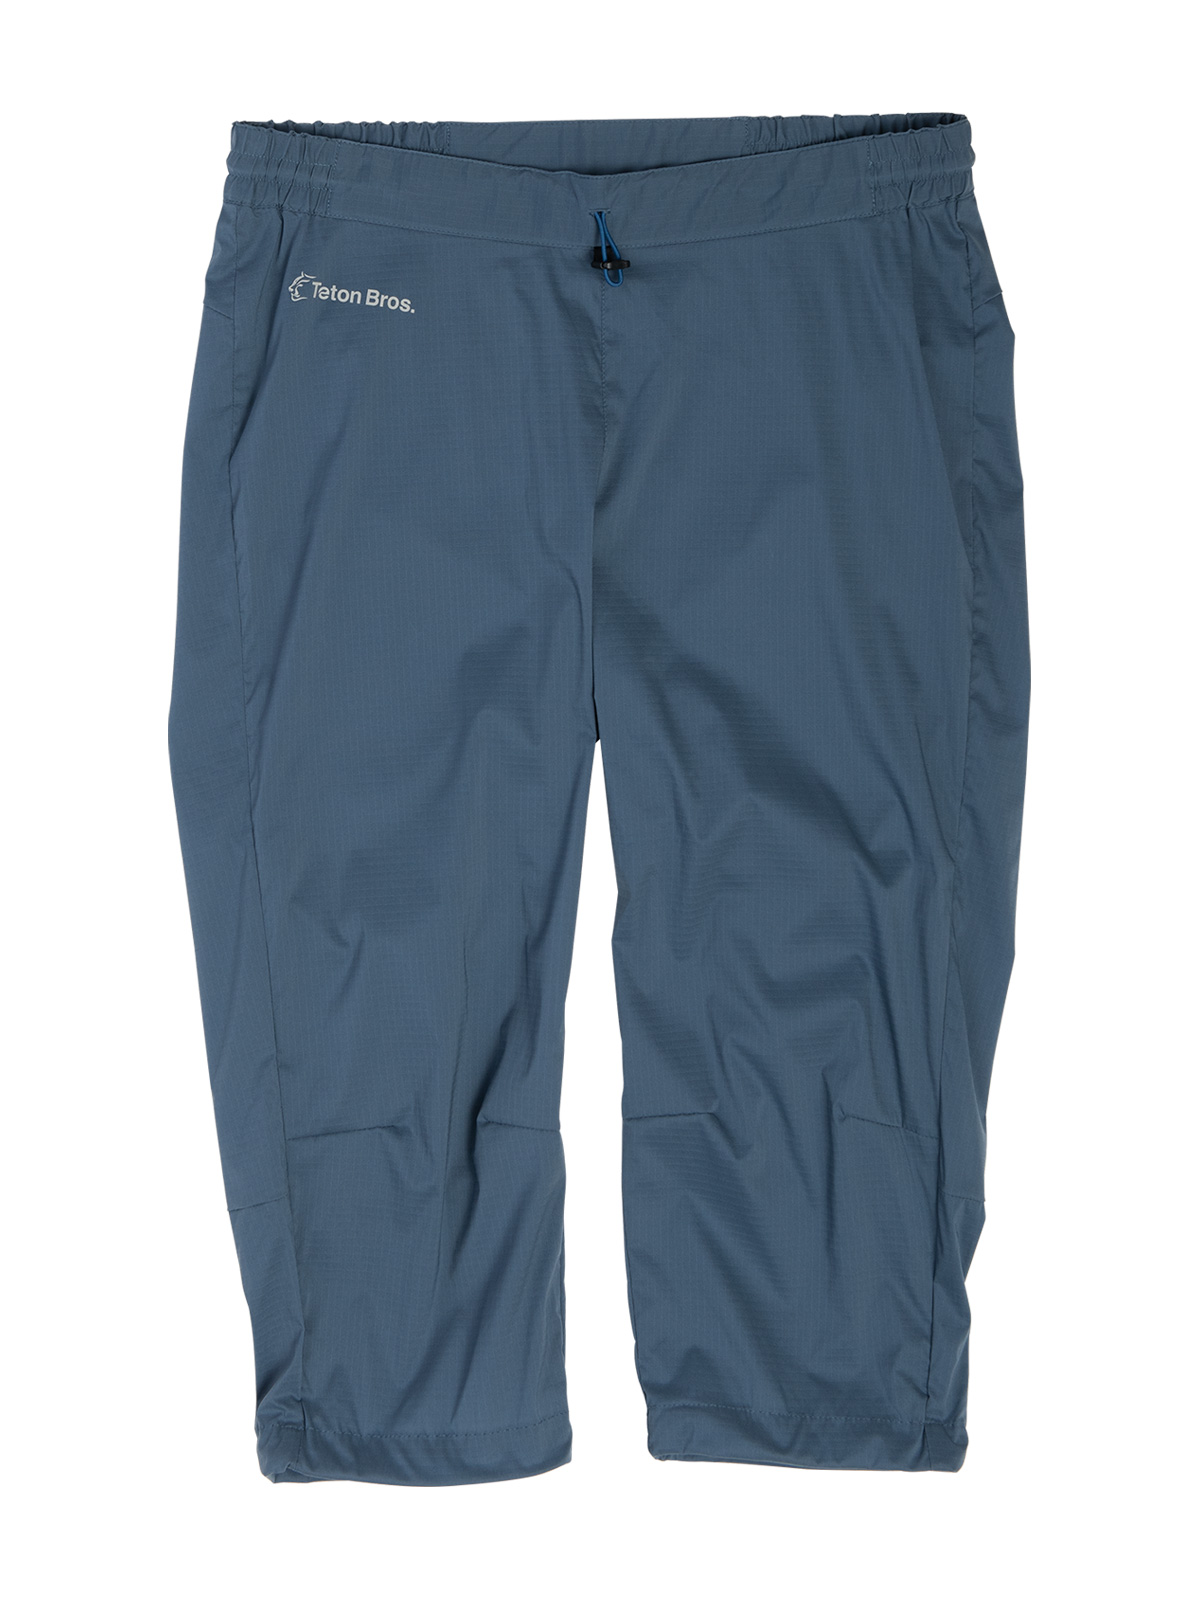 WS Wind River 3/4 Pant (Women)